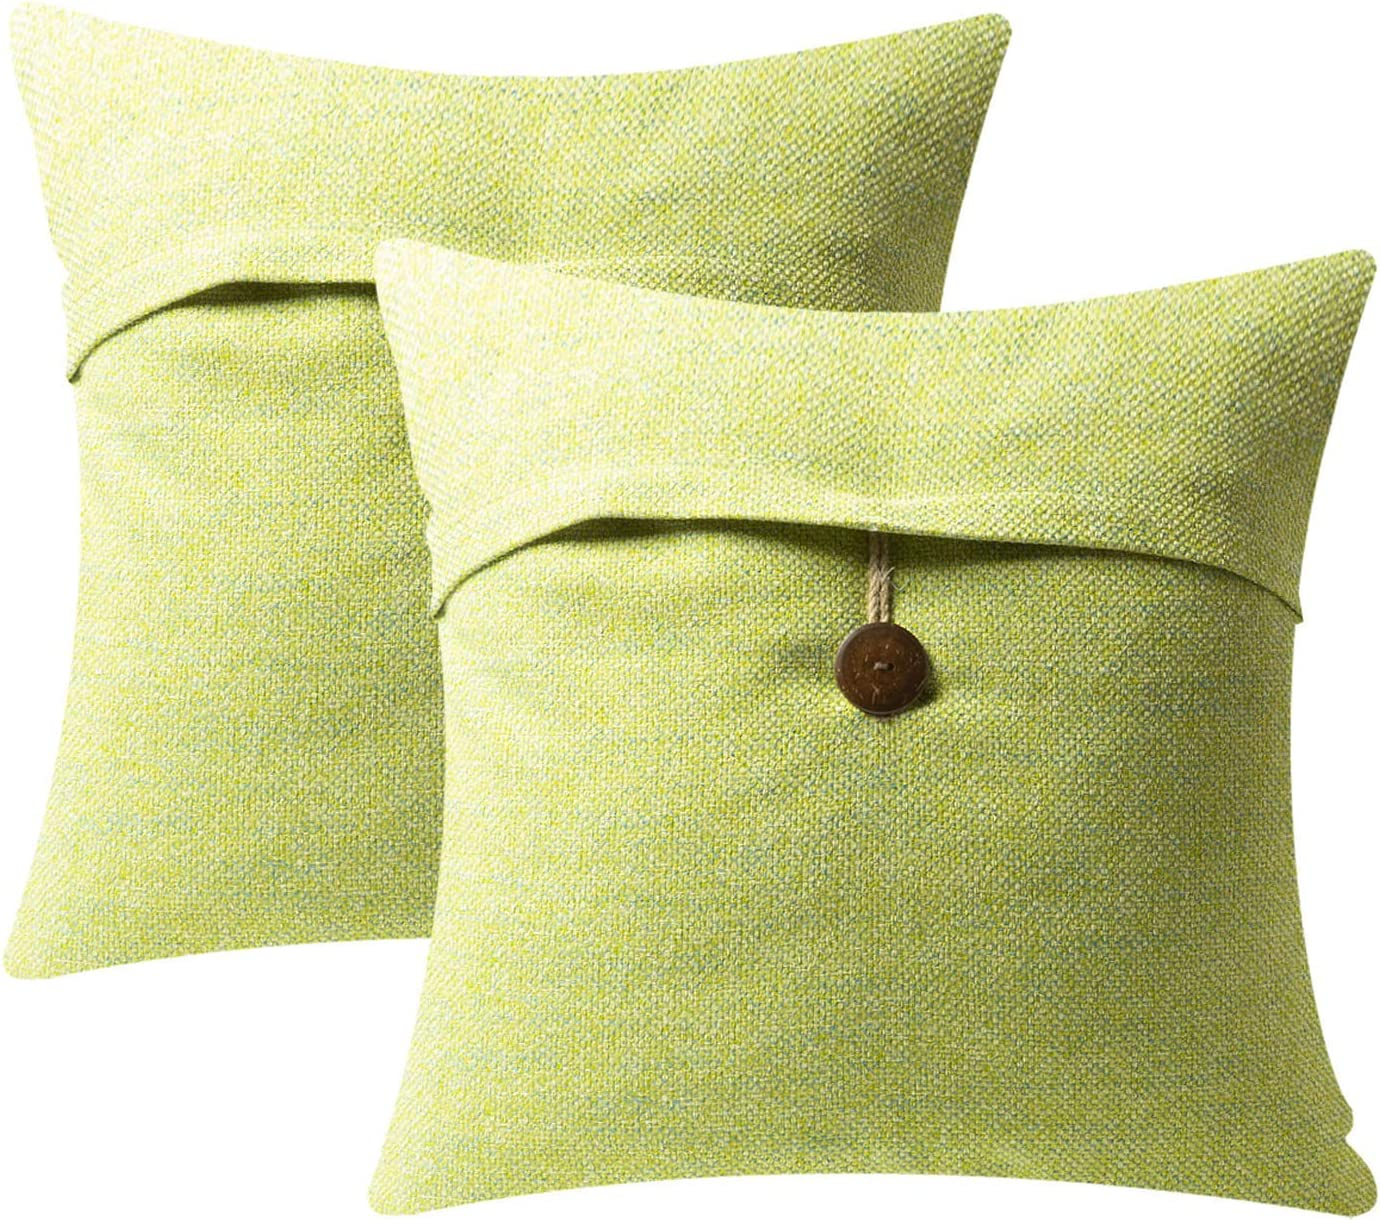 Azume Textured Linen Throw Pillow Covers Set of 2 Decorative Button Up Cushion Case for Couch, Sofa, Chair, Living Room, 18x18, Water Green